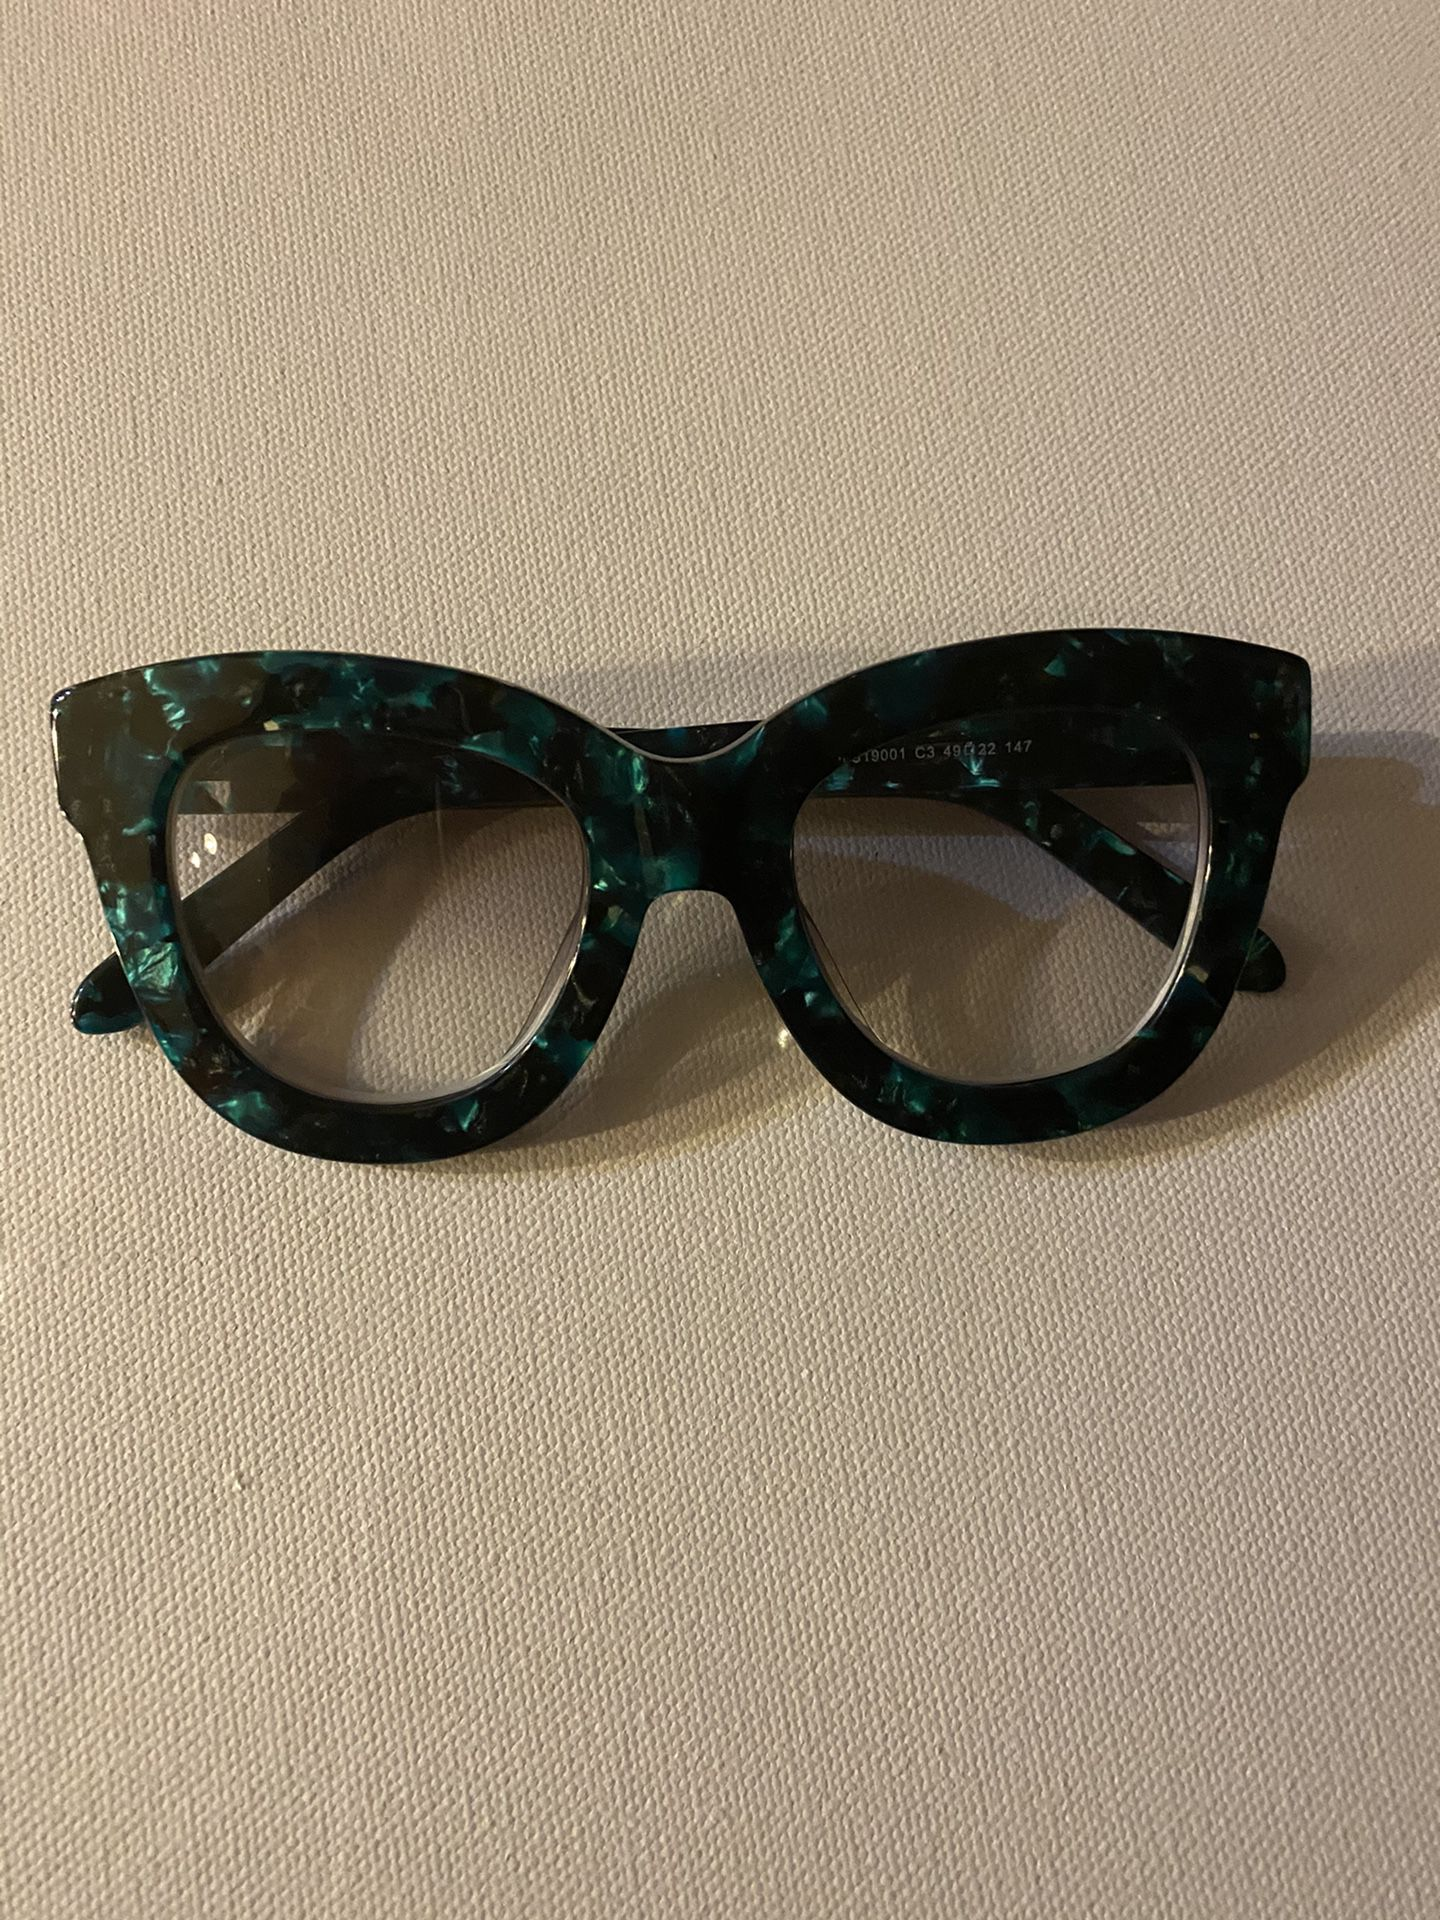 ICY Frames